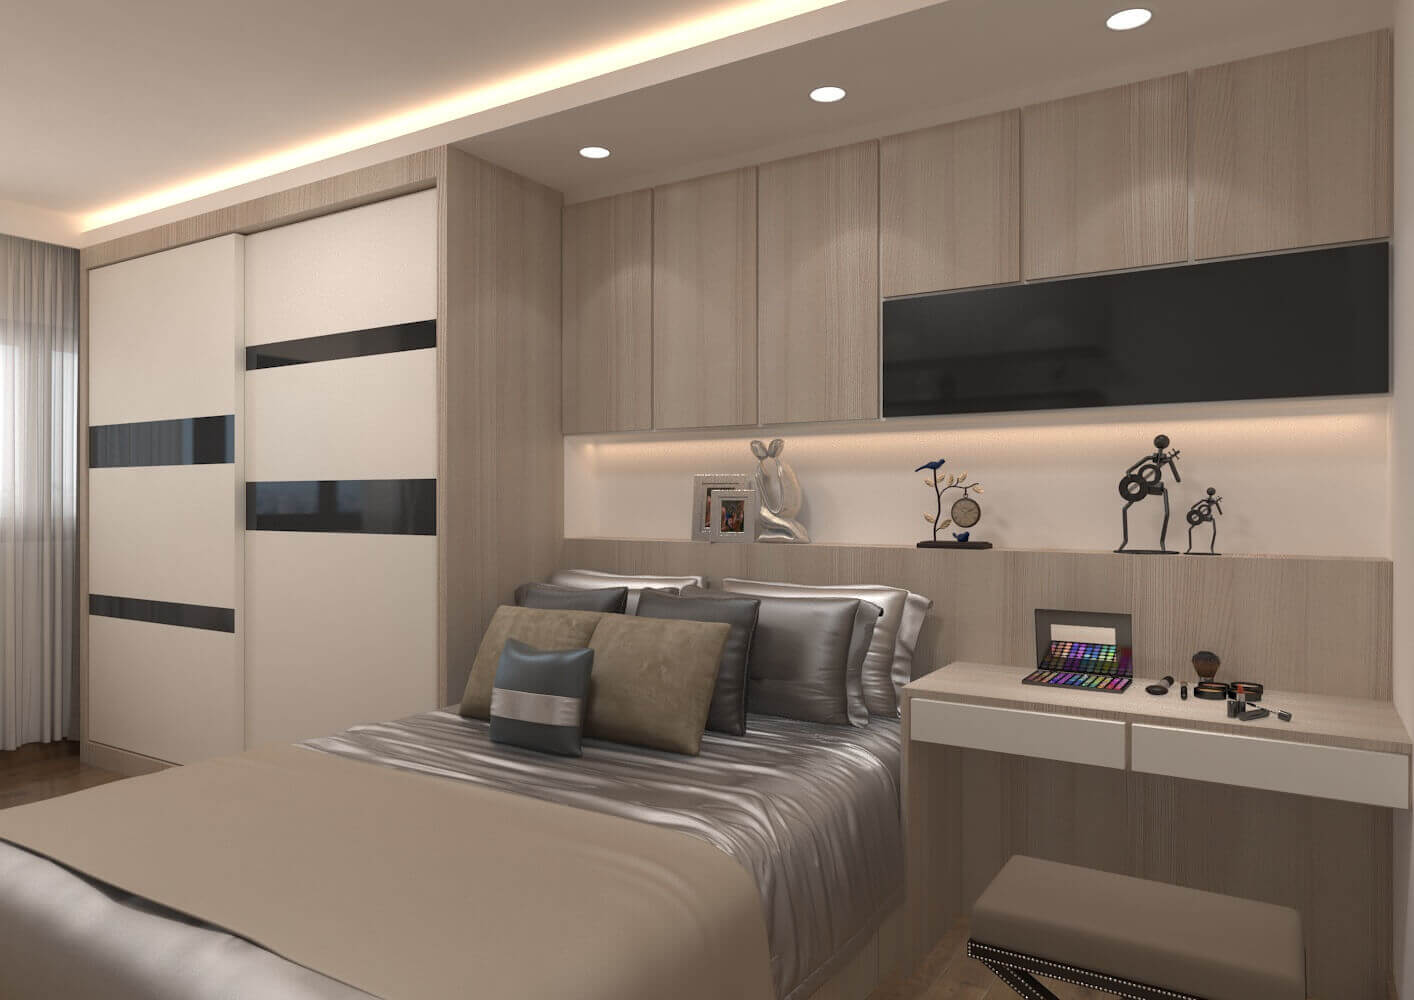 1 bedroom design singapore 28 images 7 tips for home for Bedroom ideas hdb